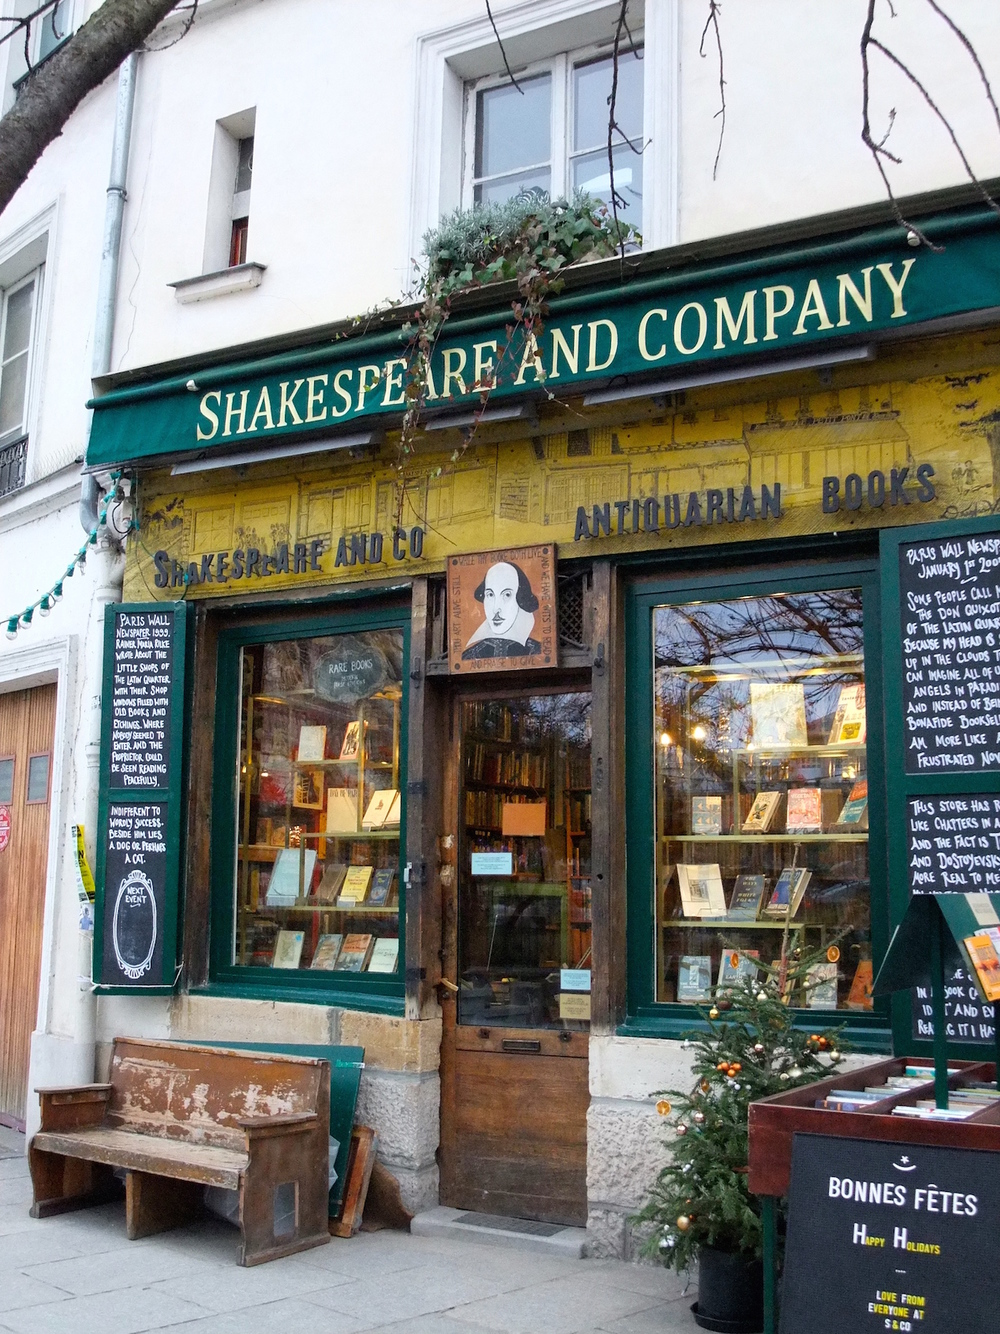 The famous Shakespeare and Company